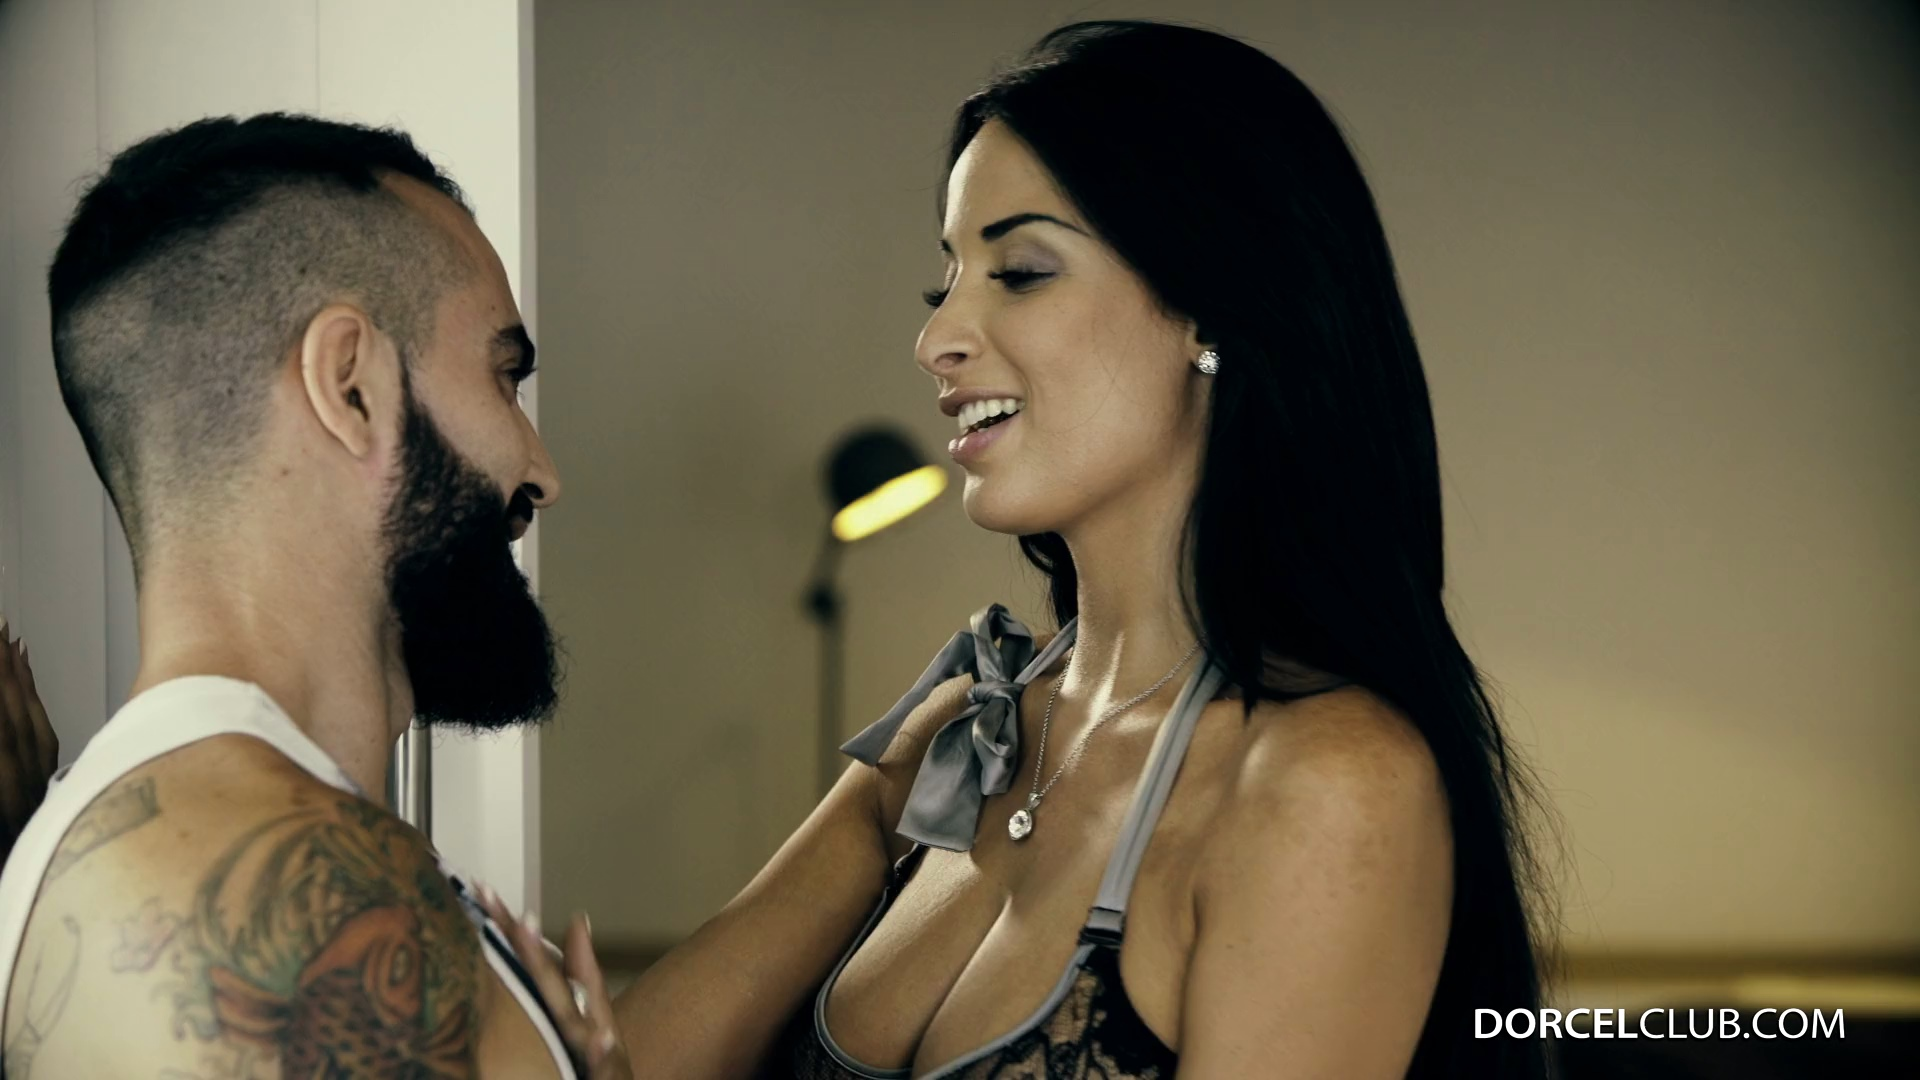 anissa kate avec un barbu sur le forum blabla 18 25 ans 17 01 2016 19 41 23. Black Bedroom Furniture Sets. Home Design Ideas